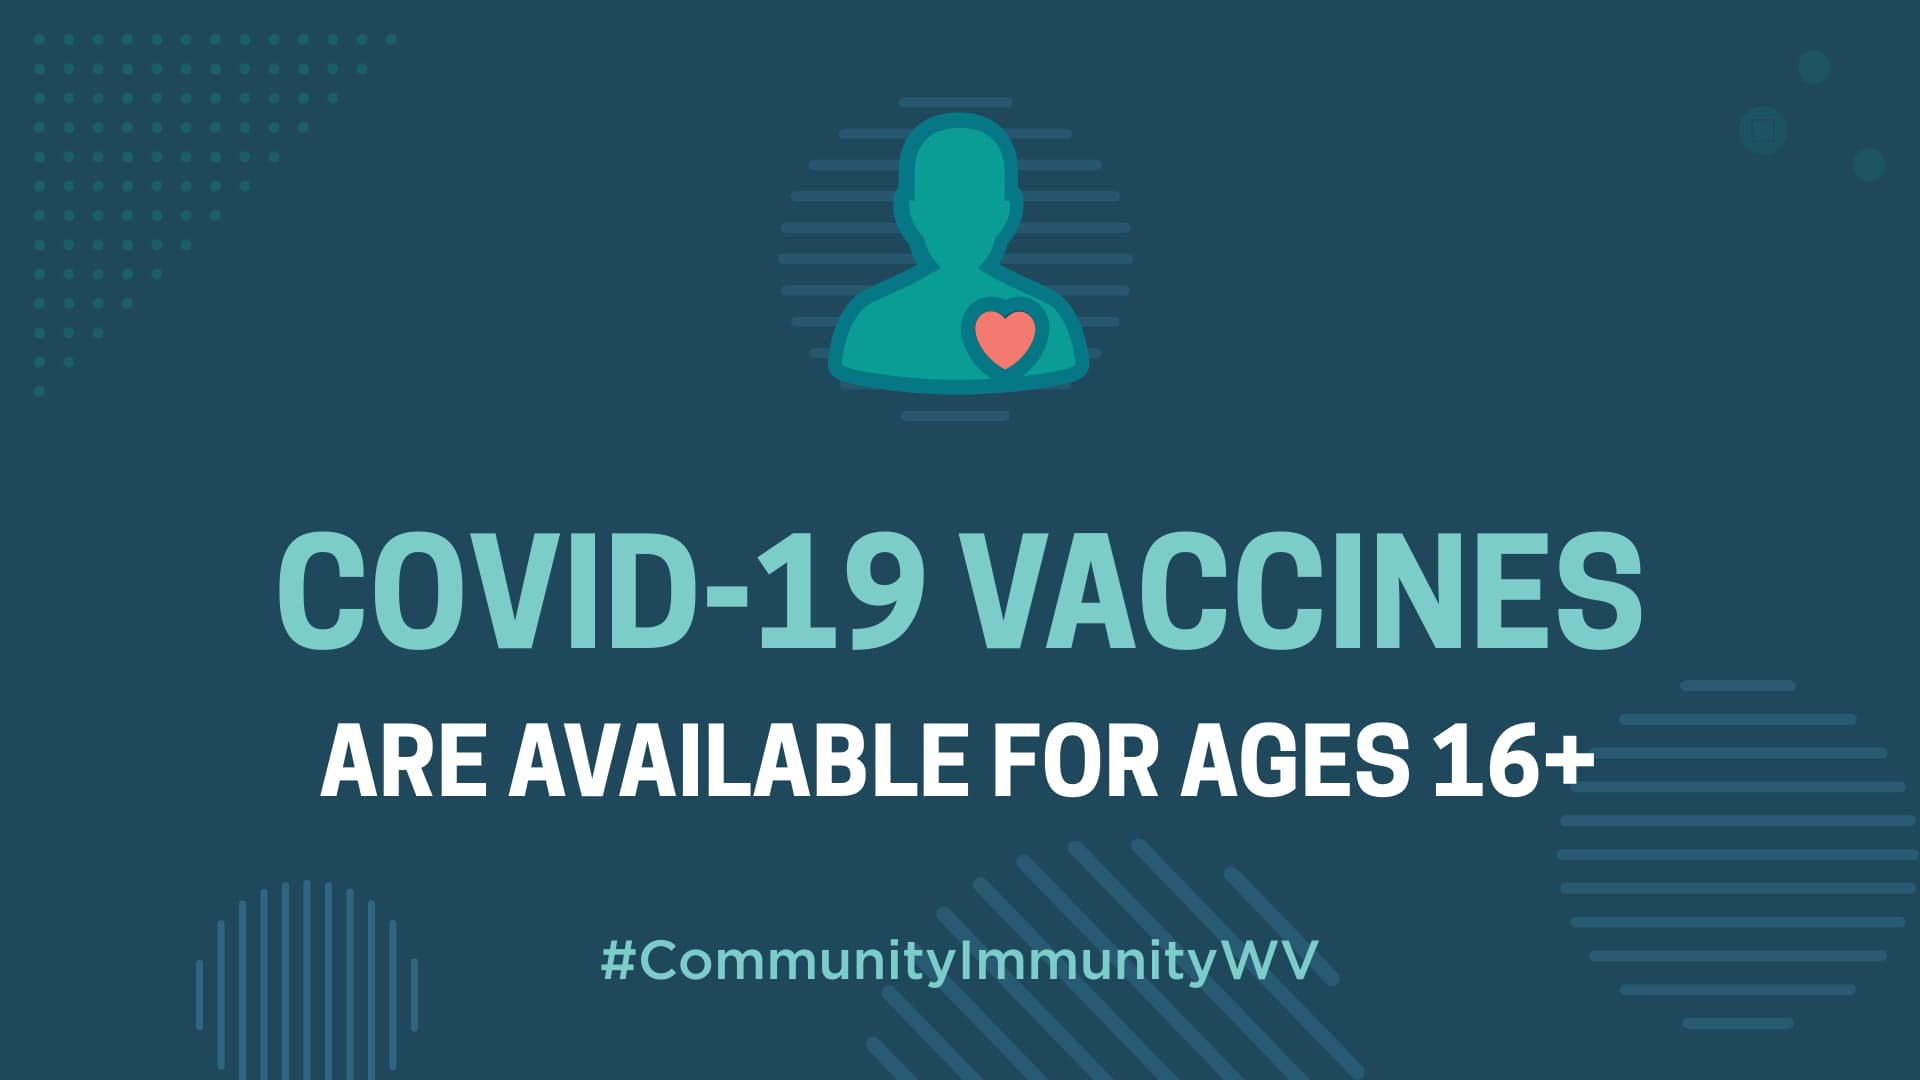 Register online for your COVID-19 Vaccination appointment